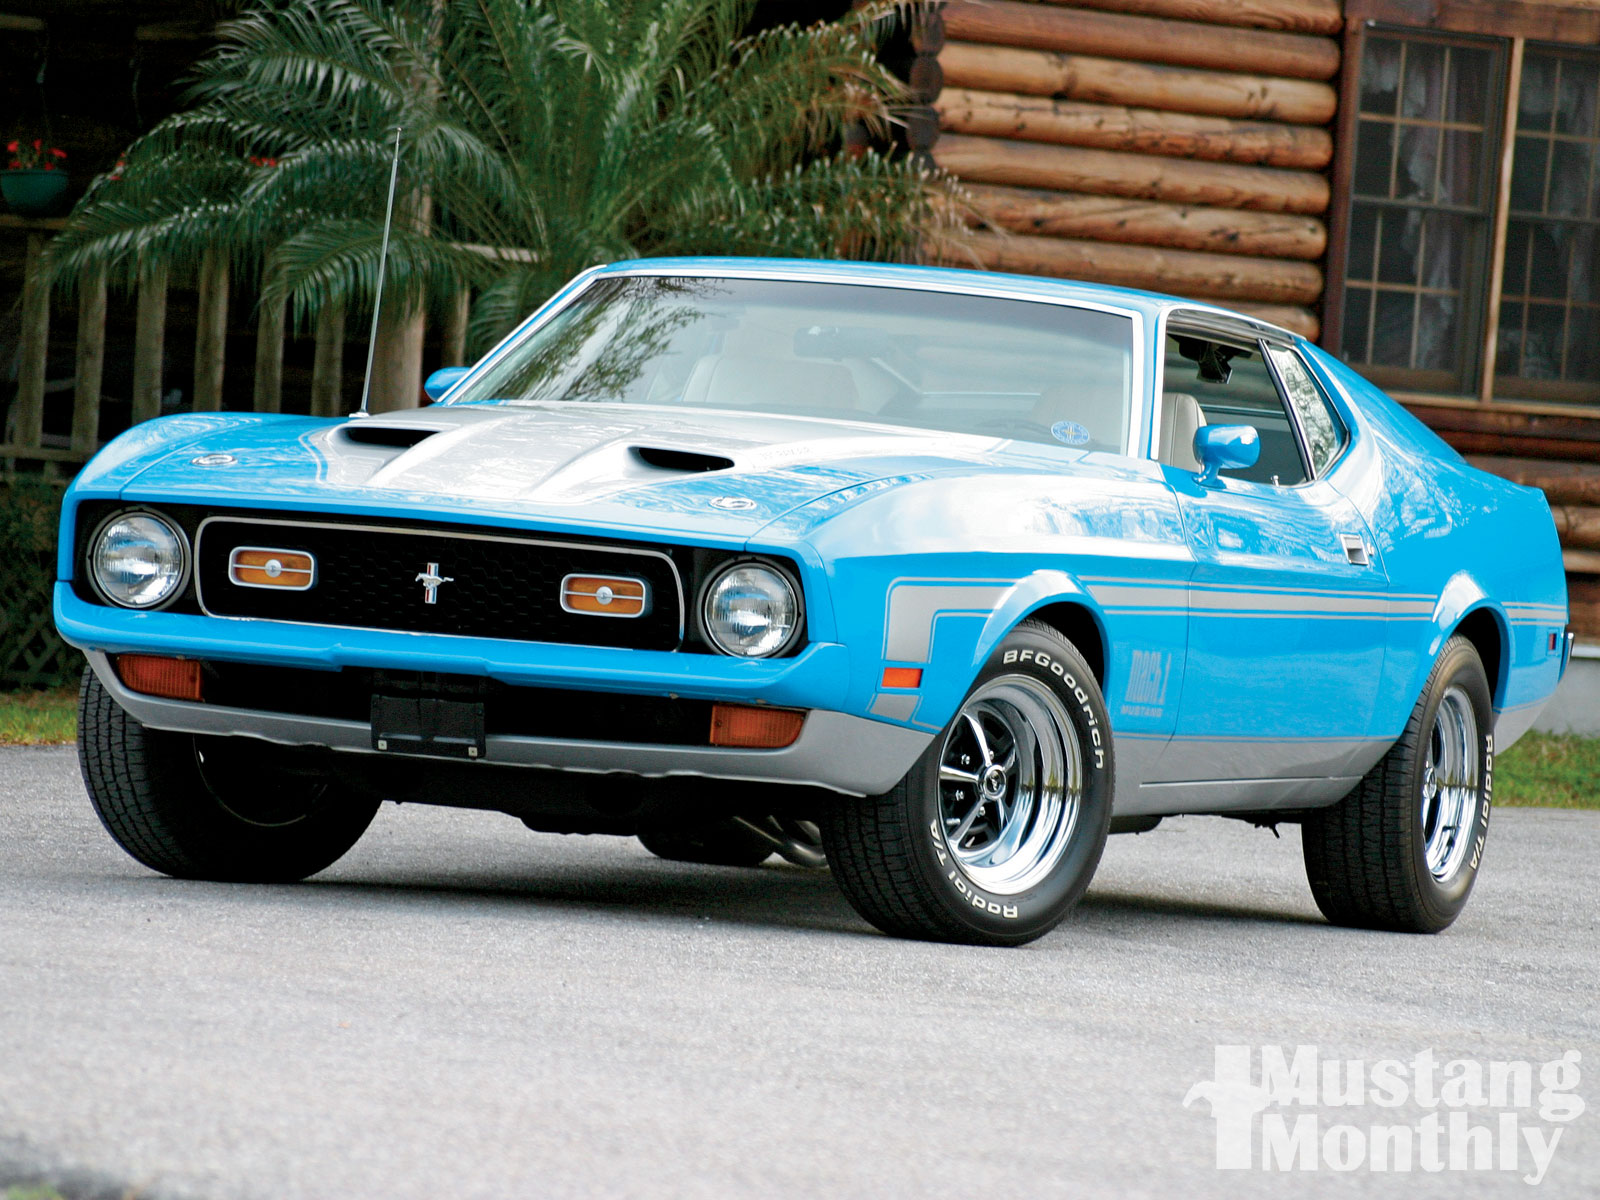 Ford Mustang Mach 1 Wallpapers Vehicles Hq Ford Mustang Mach 1 Pictures 4k Wallpapers 2019